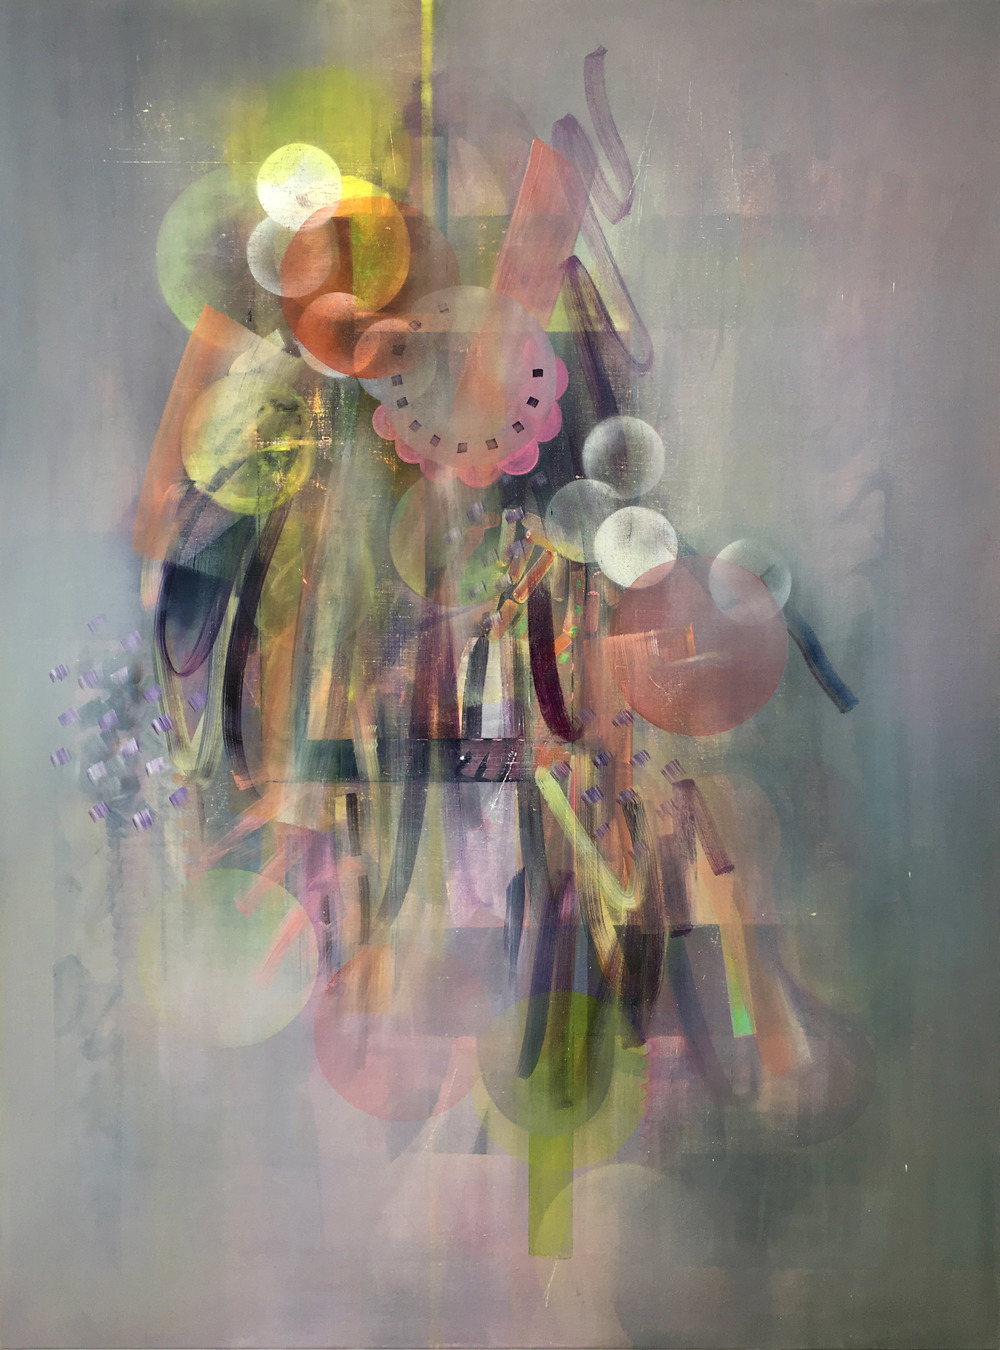 Untitled 7, oil on canvas, 120cm x 90cm, 2016